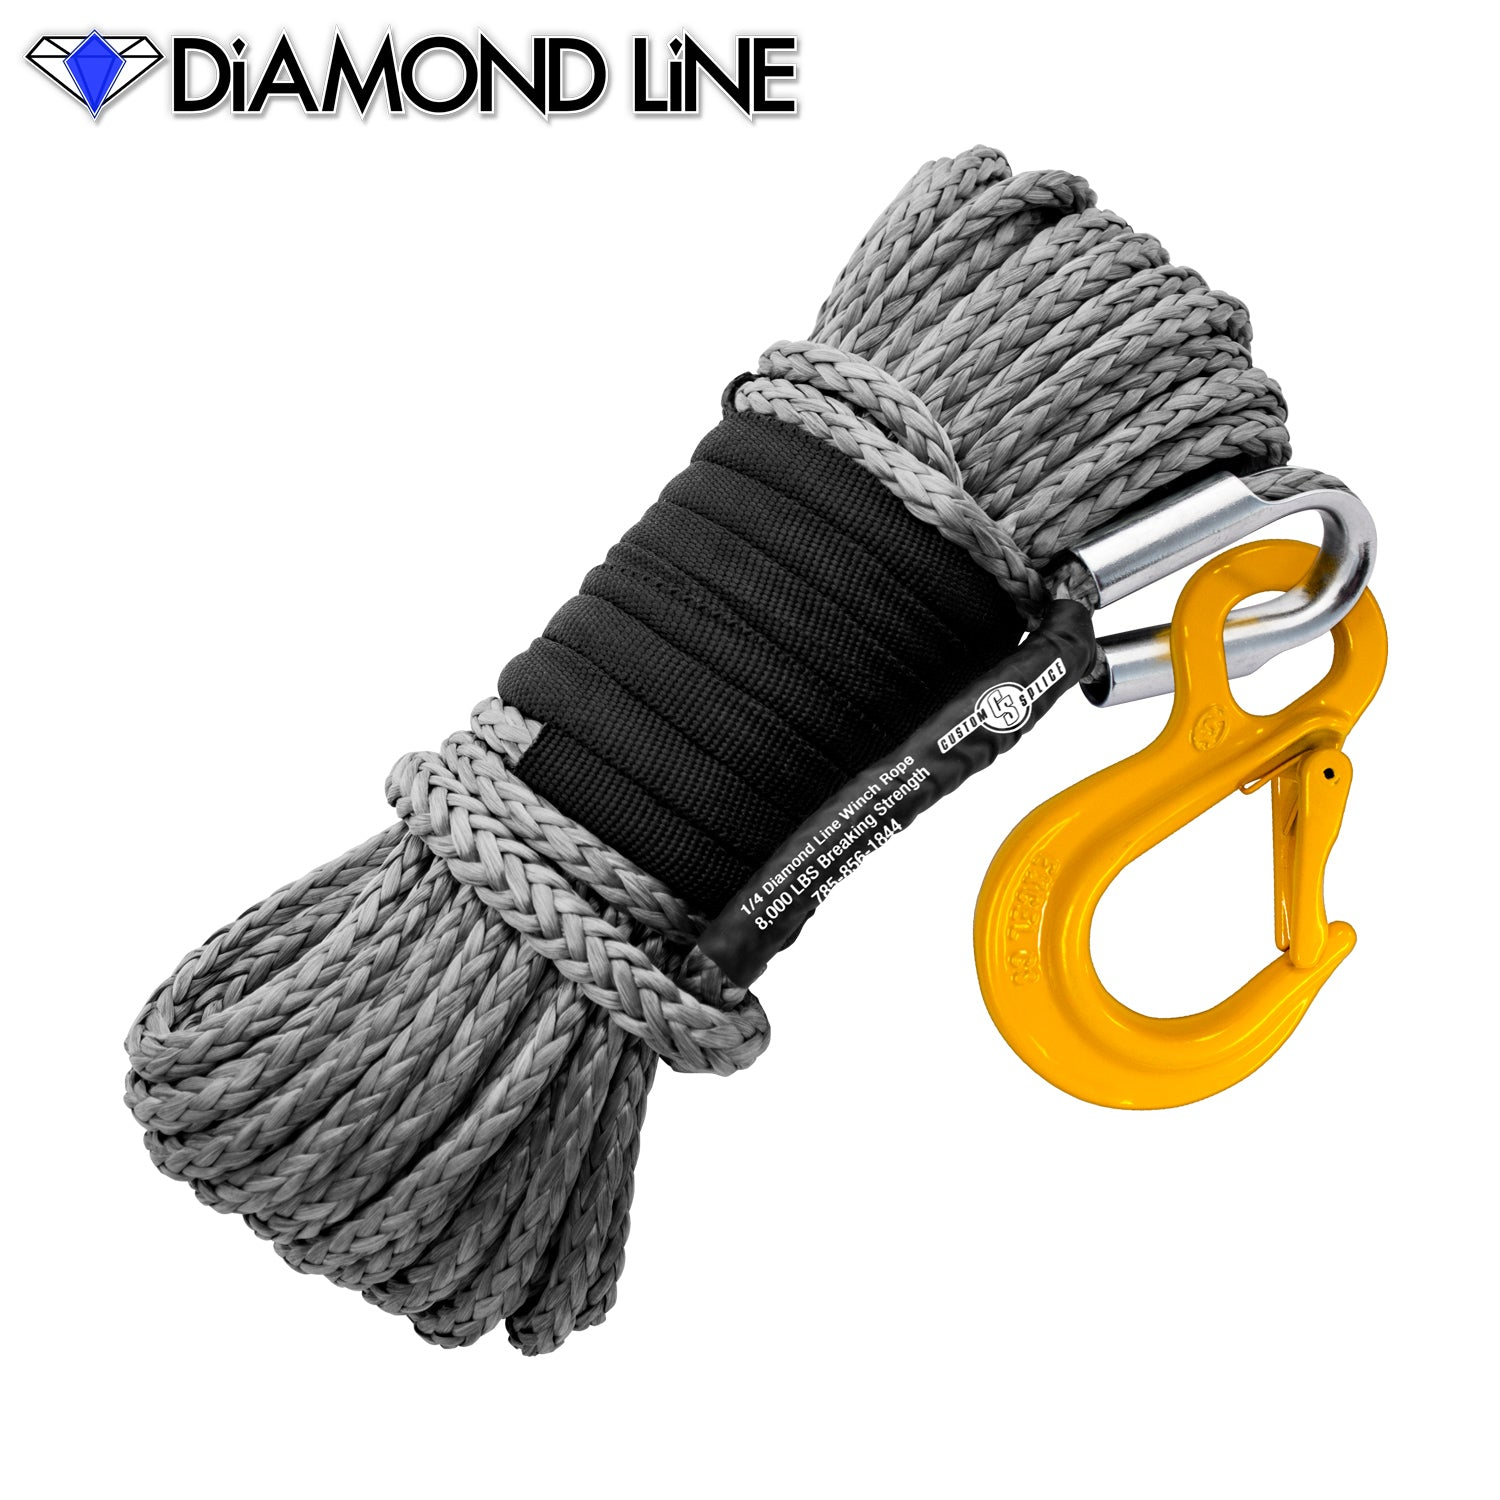 "1/4"" x 55' Diamond Line Synthetic Winch Rope Mainline - Gray with Hook."